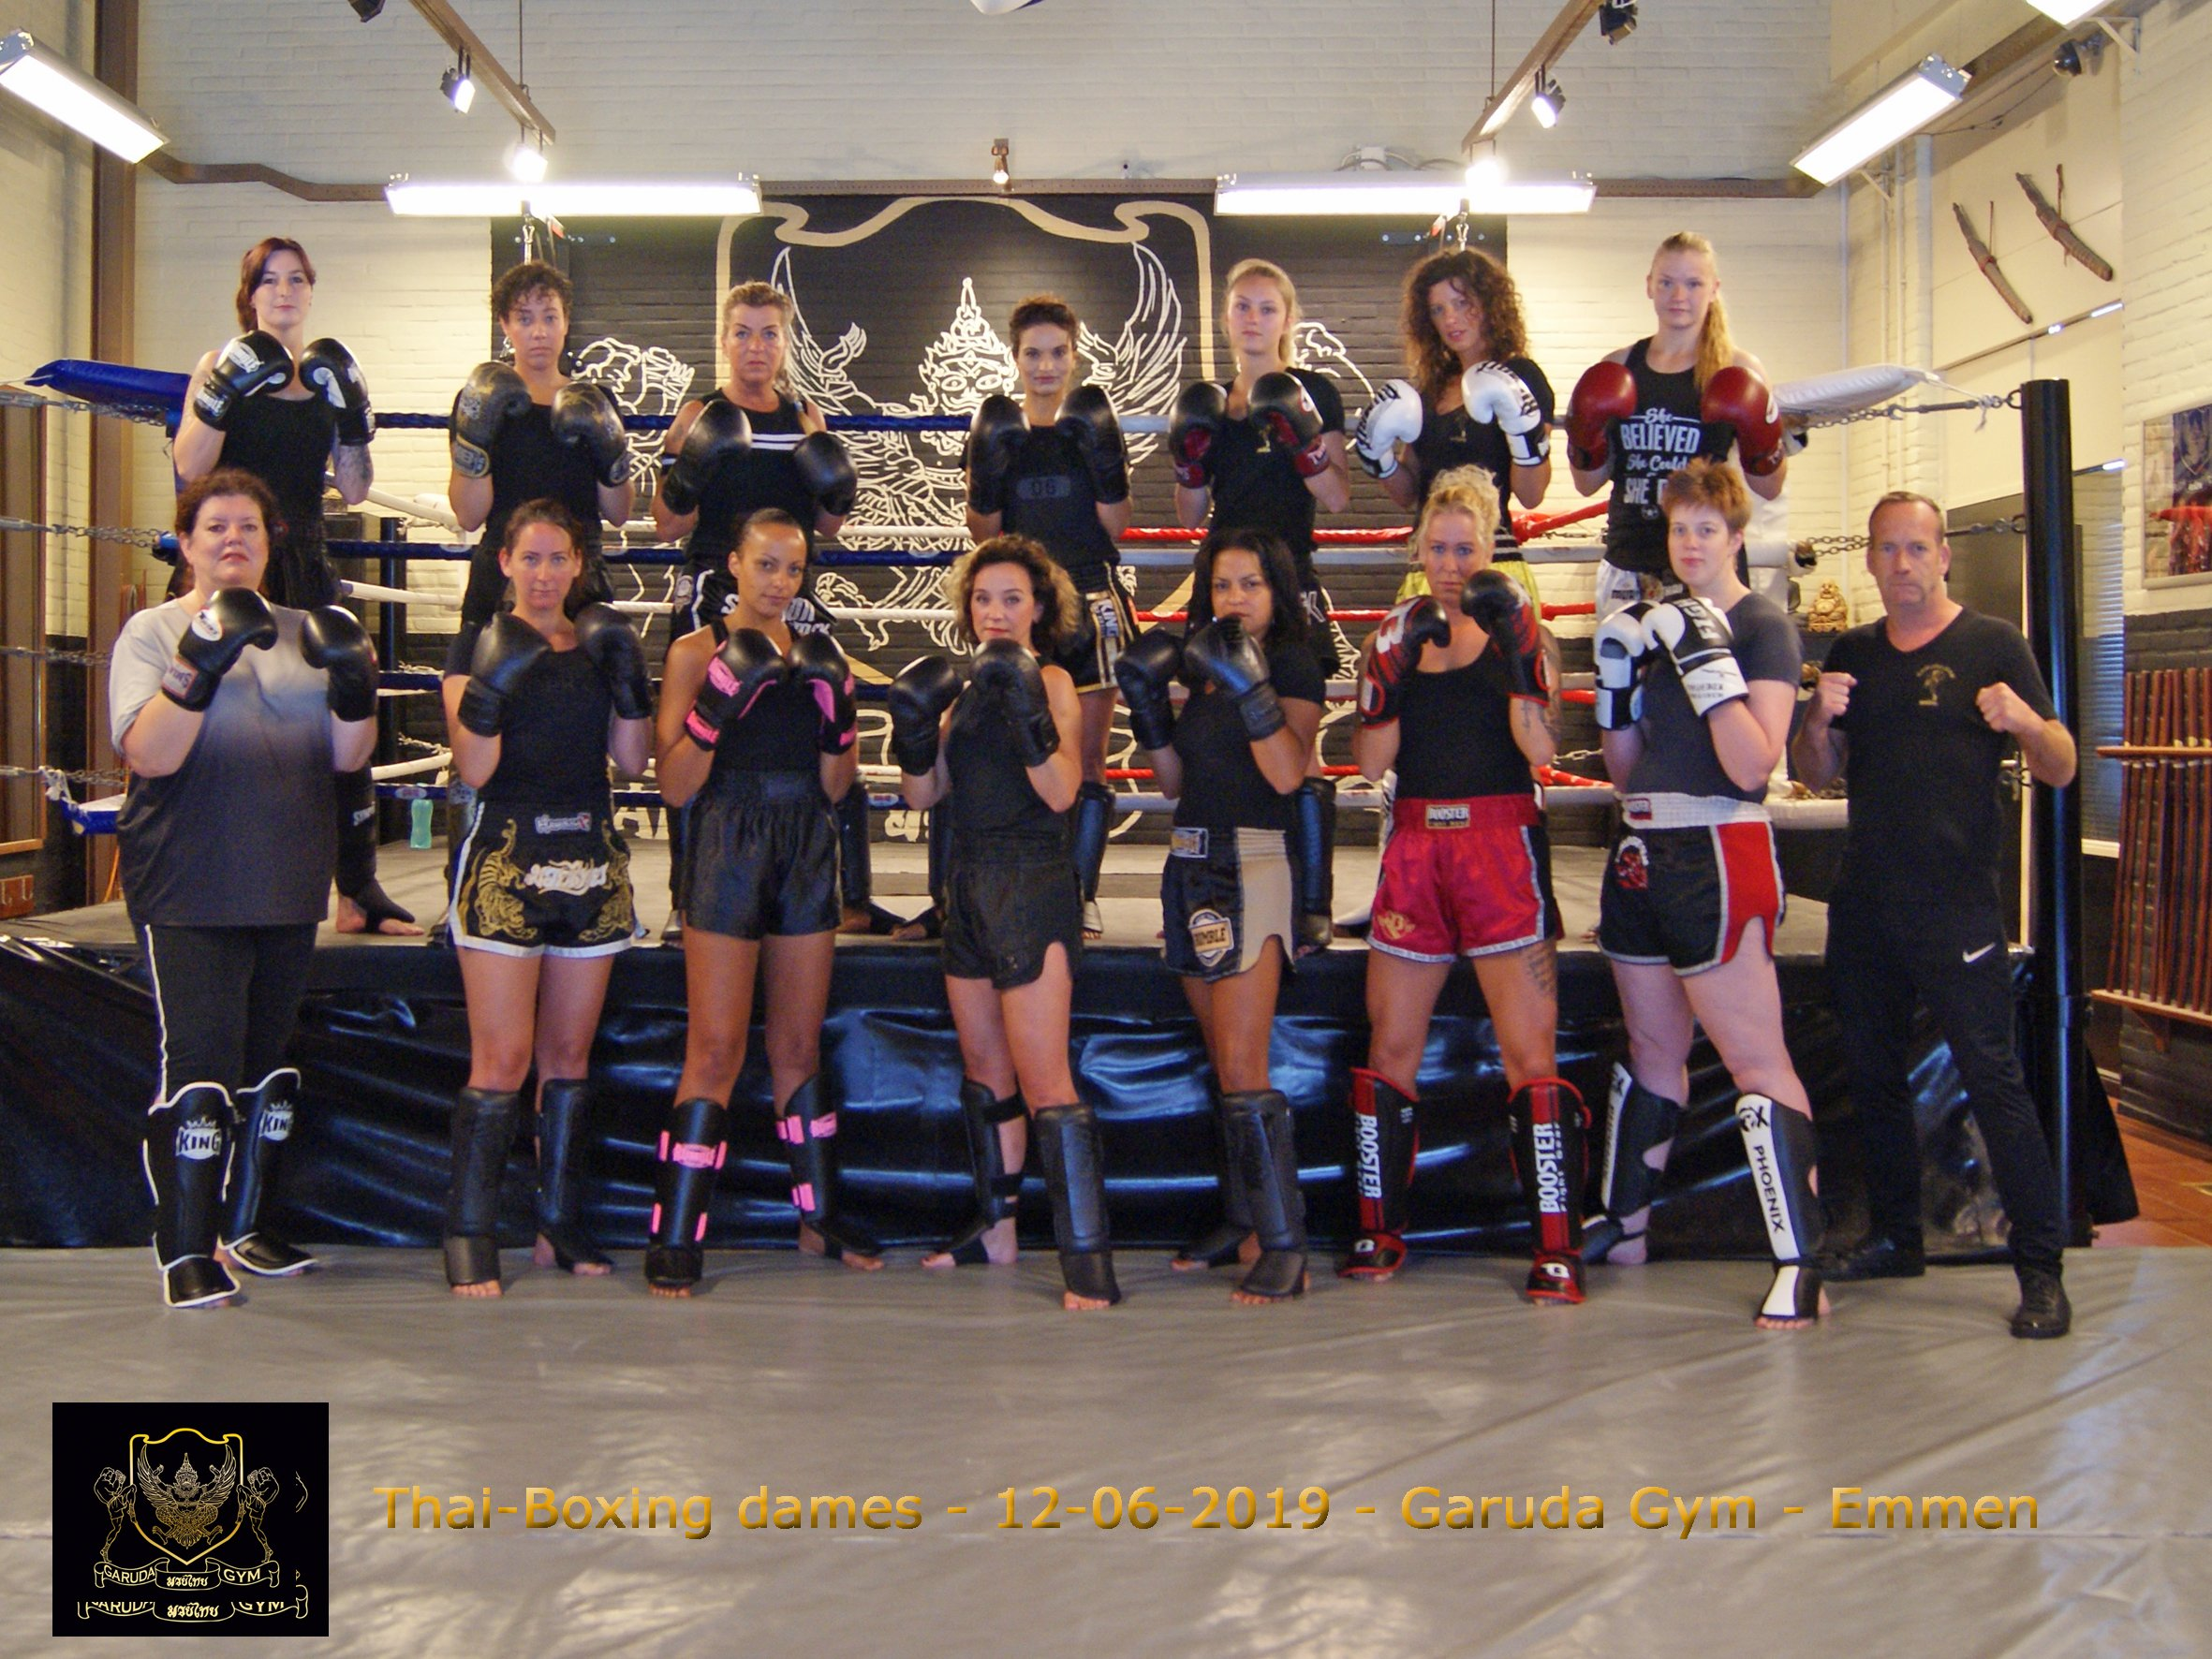 l DSC04301 - Thai-Boxing dames - 12062019